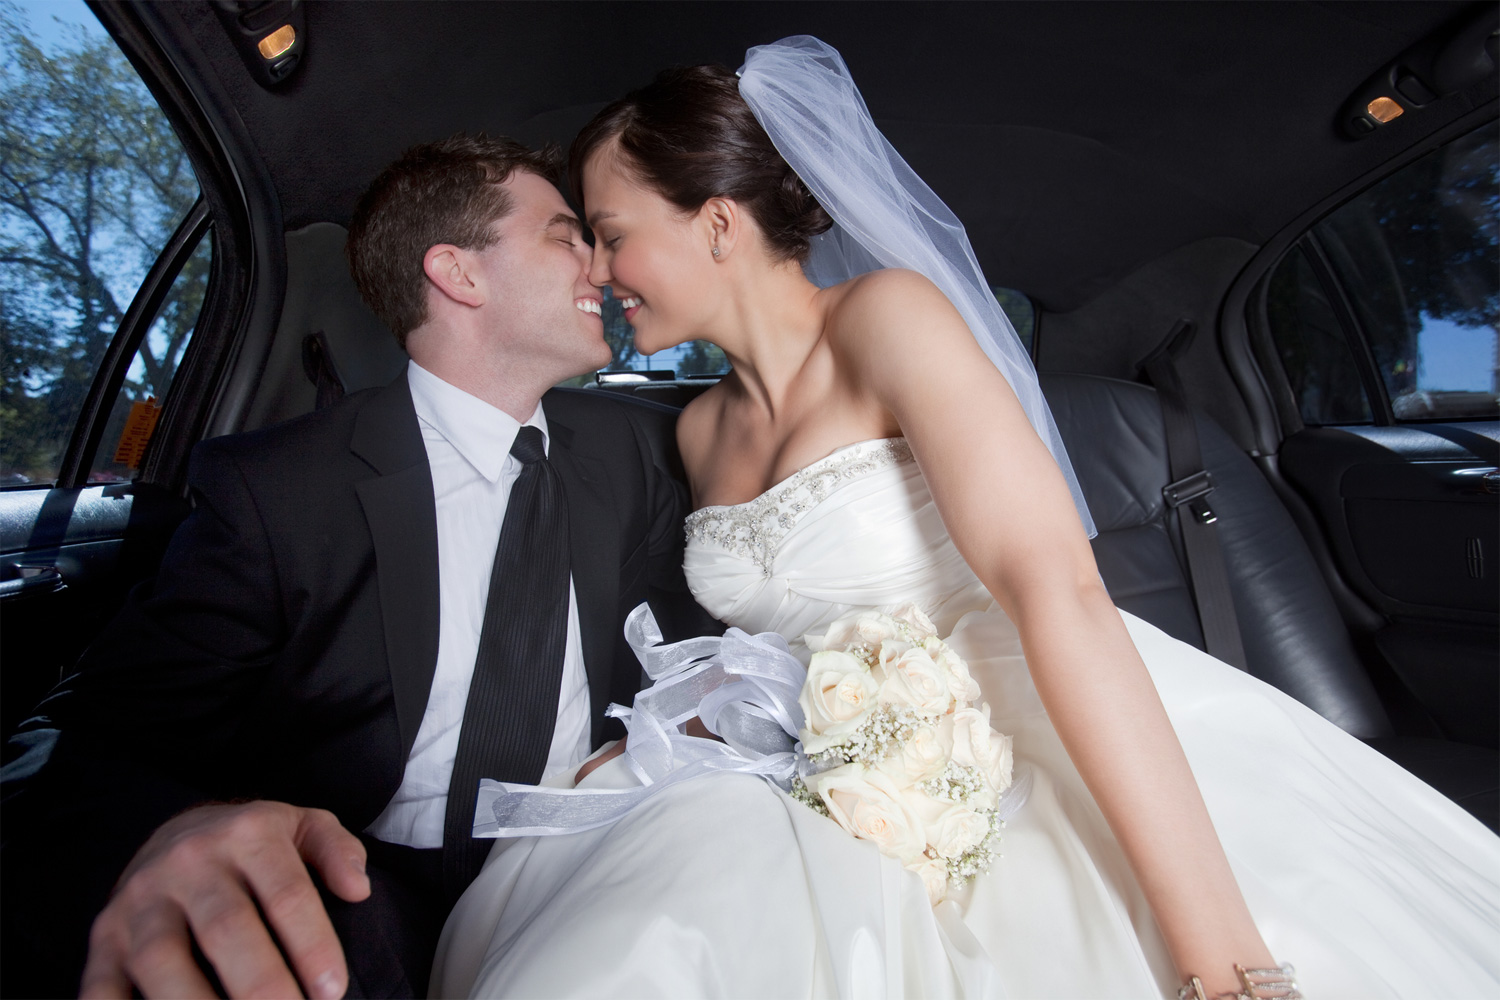 newlywed-couple-in-limousine.jpg